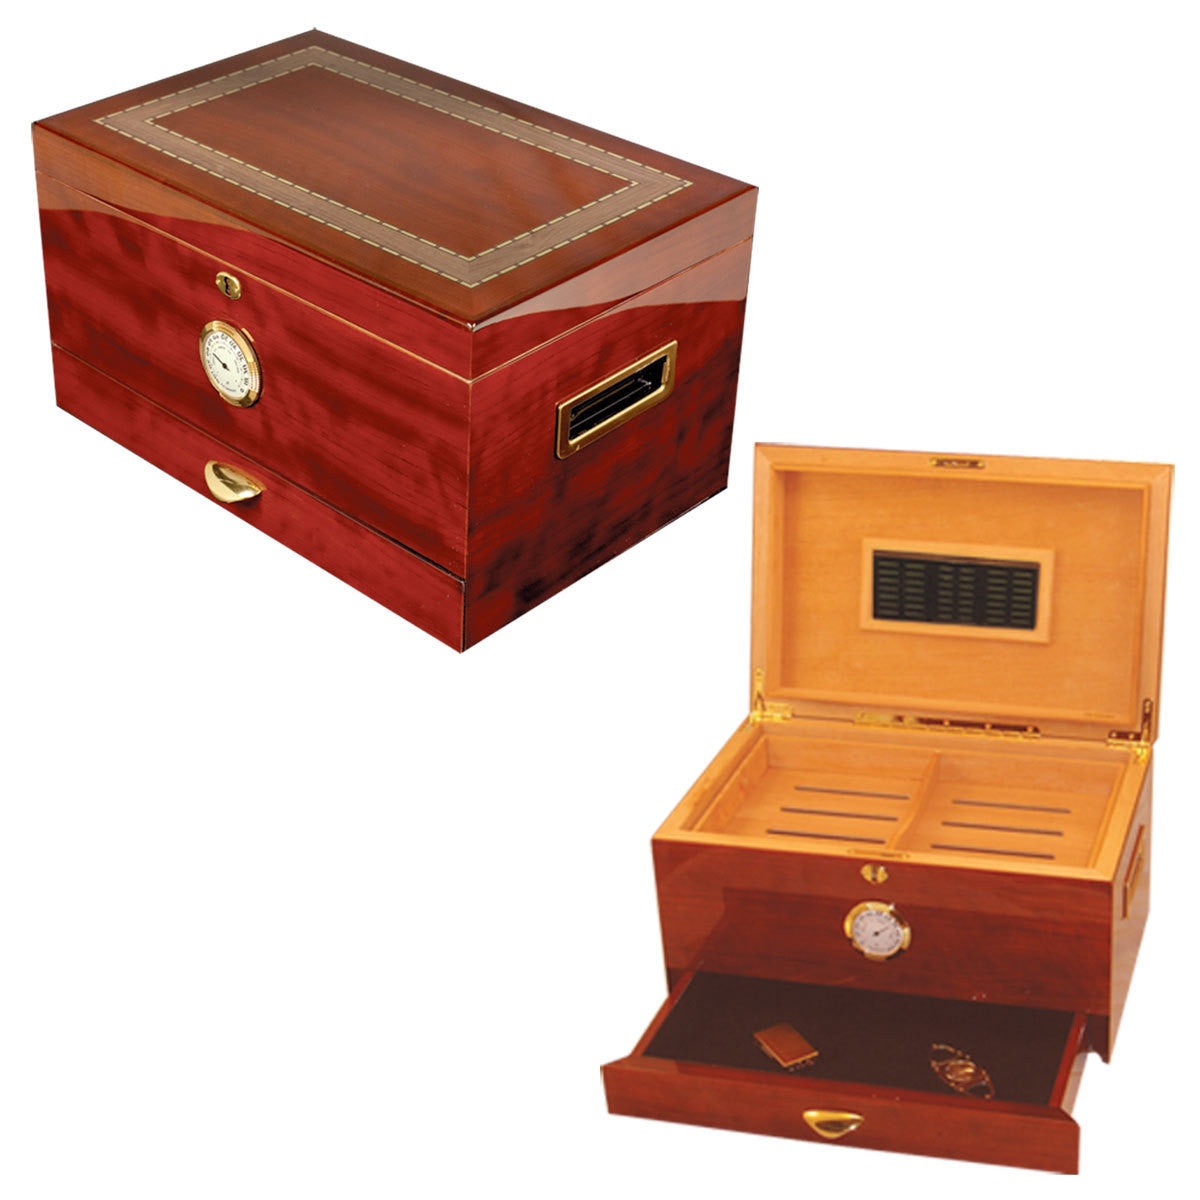 Arte Original Cigar Humidor for 150 Cigars - Cigar boulevard